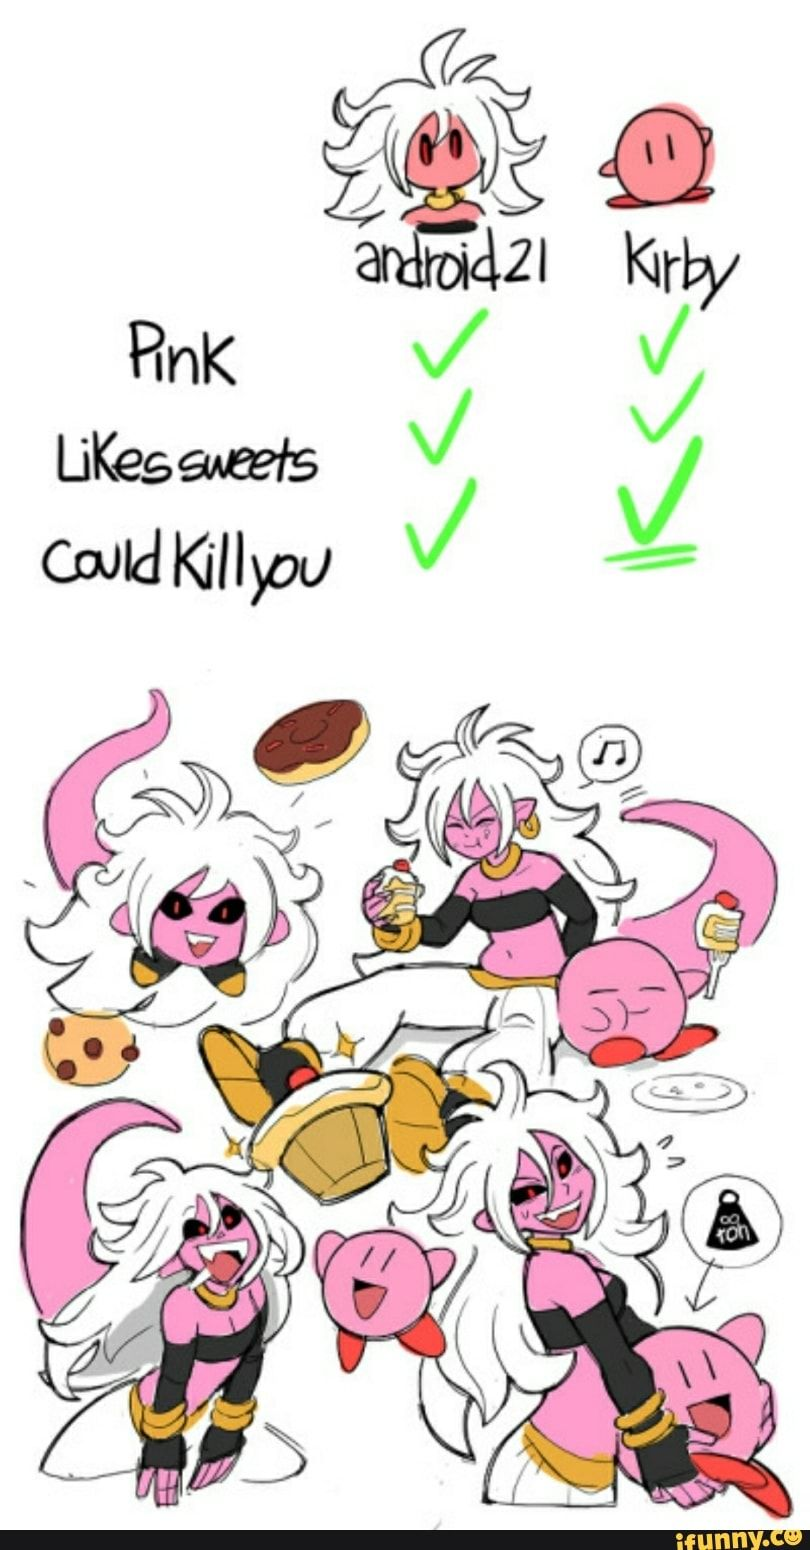 Dbz Dragonballz Android21 Kirby Ifunny With Images